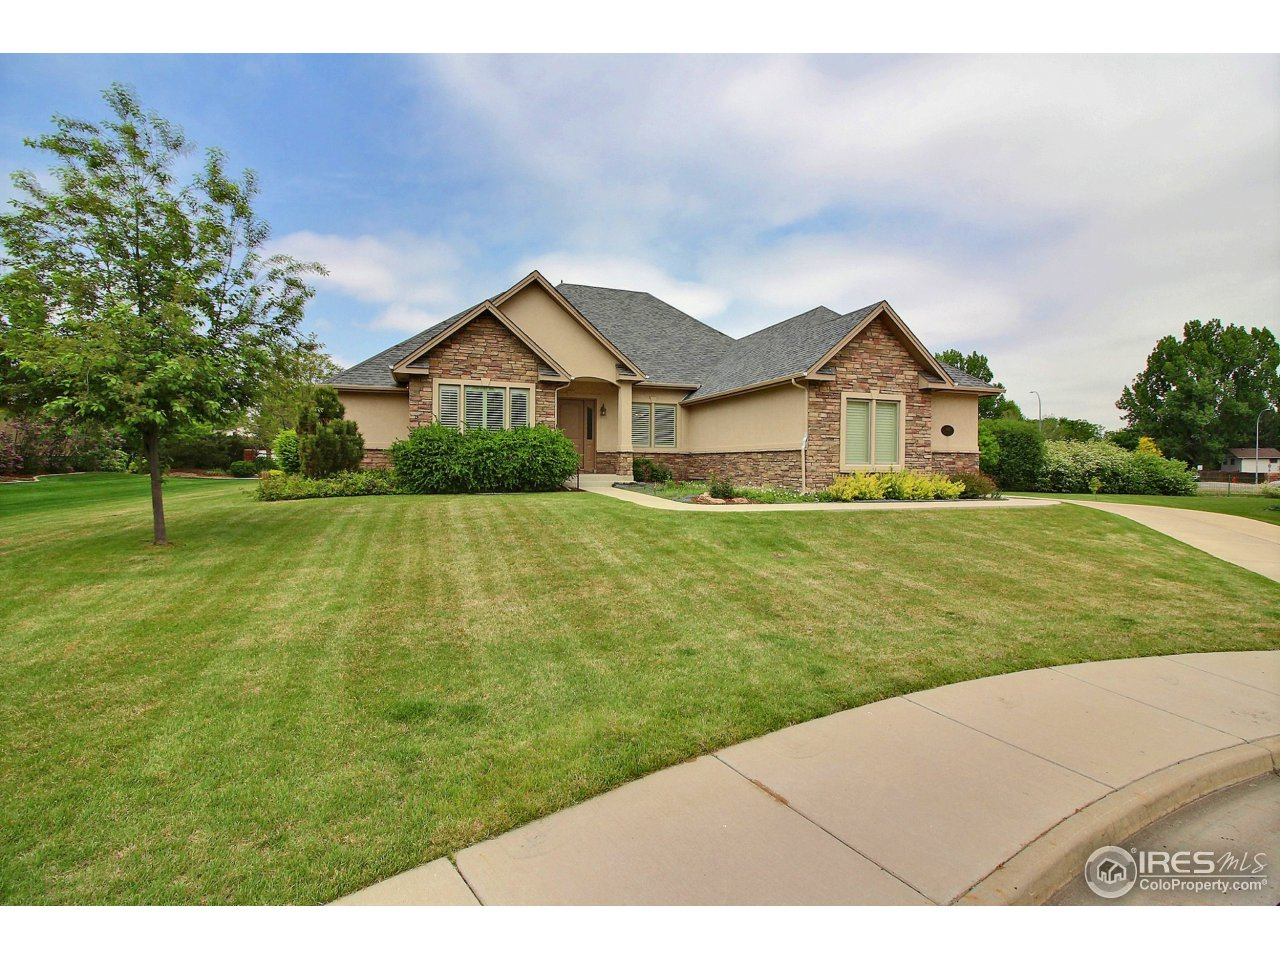 1607 37th Ave Pl, Greeley CO 80634